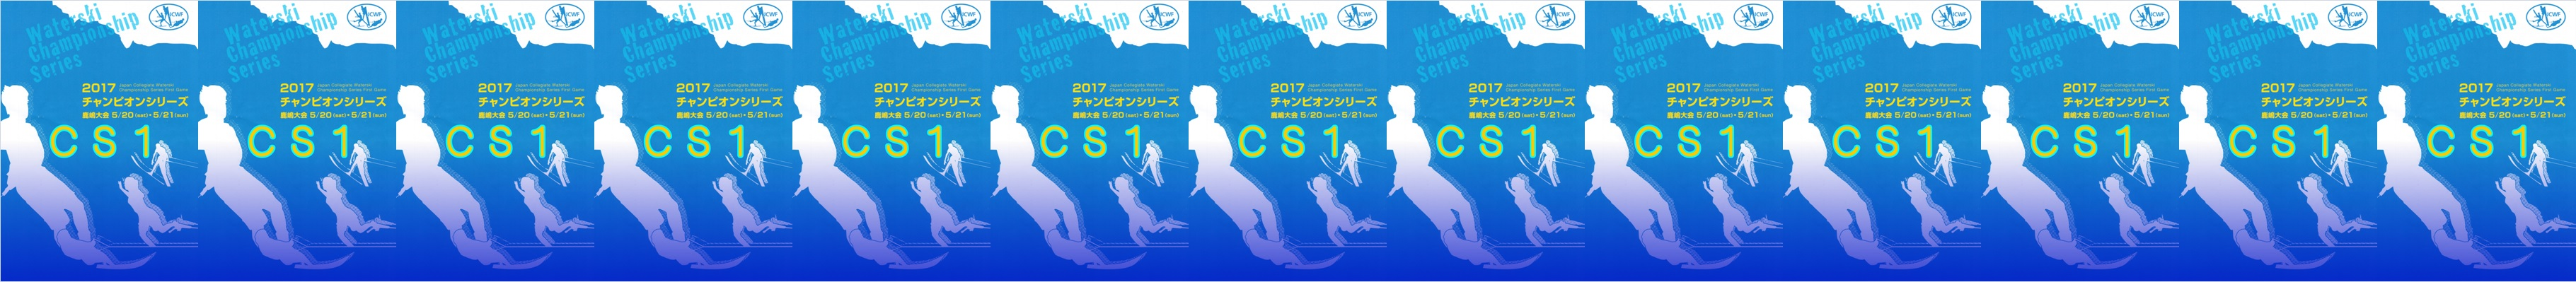 2017CS1 Men's Title_001